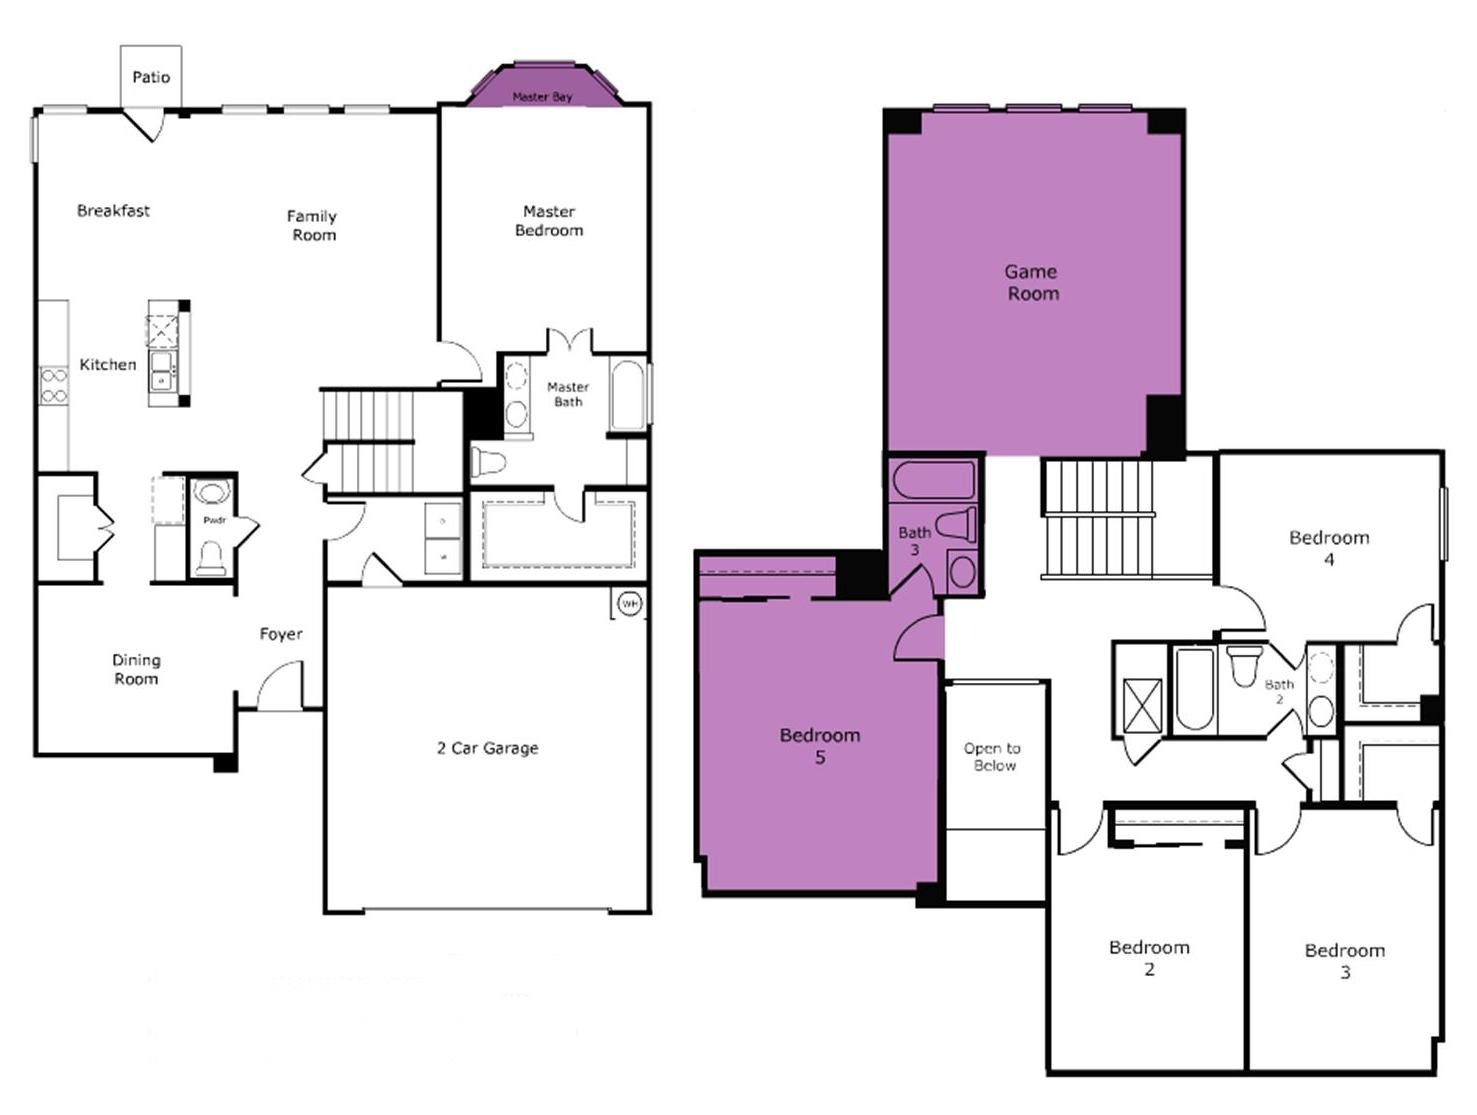 Let us design a plan for you - Floor plan with additions highlighted in purple.